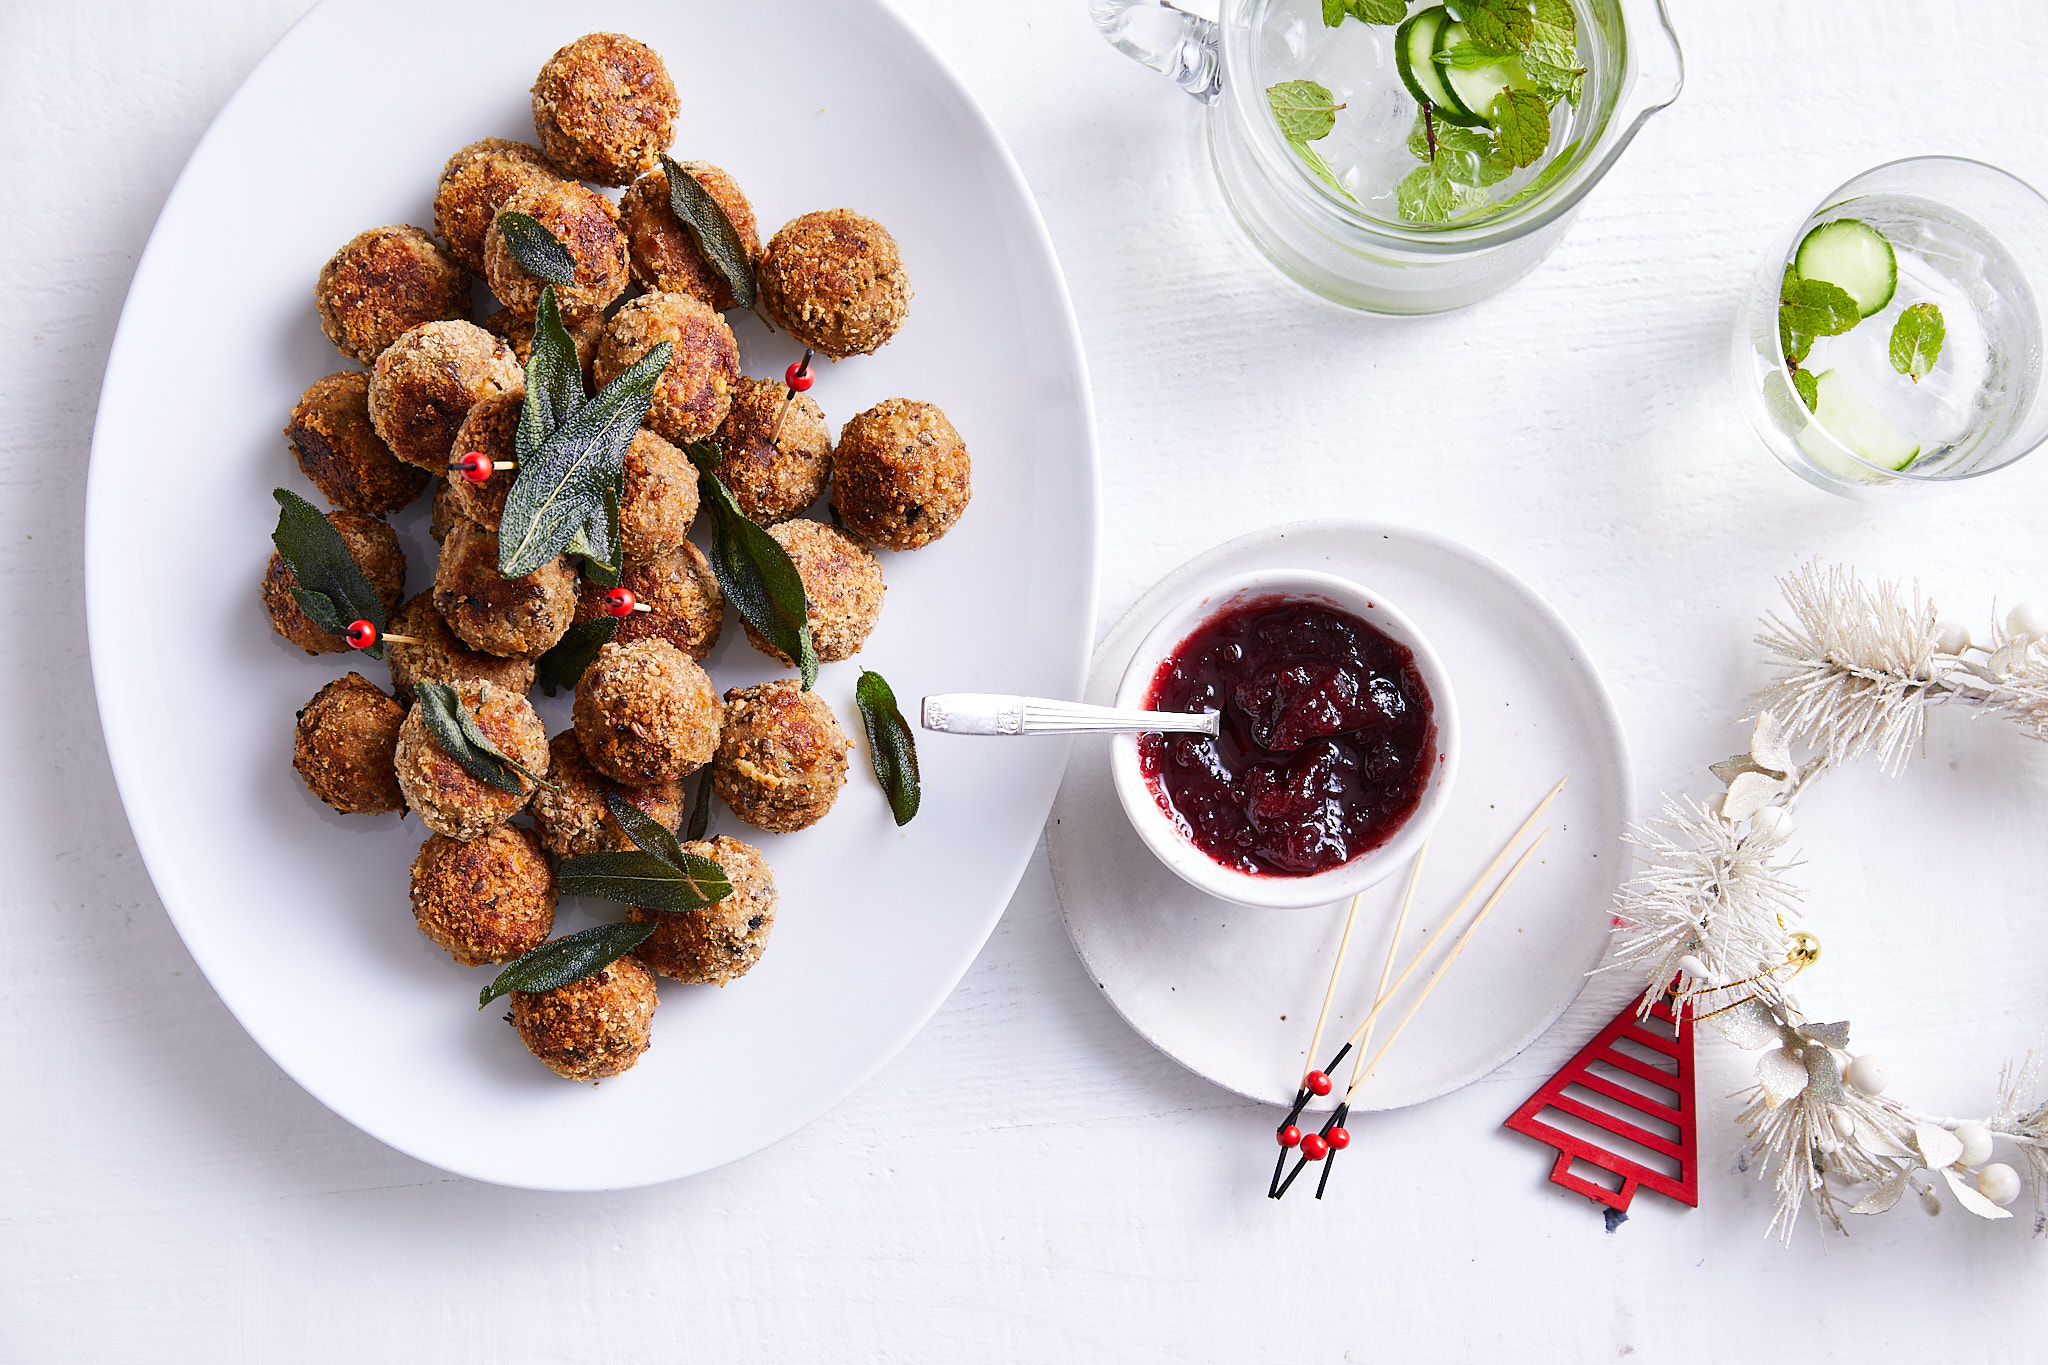 Turkey and sage meatballs with cranberry sauce